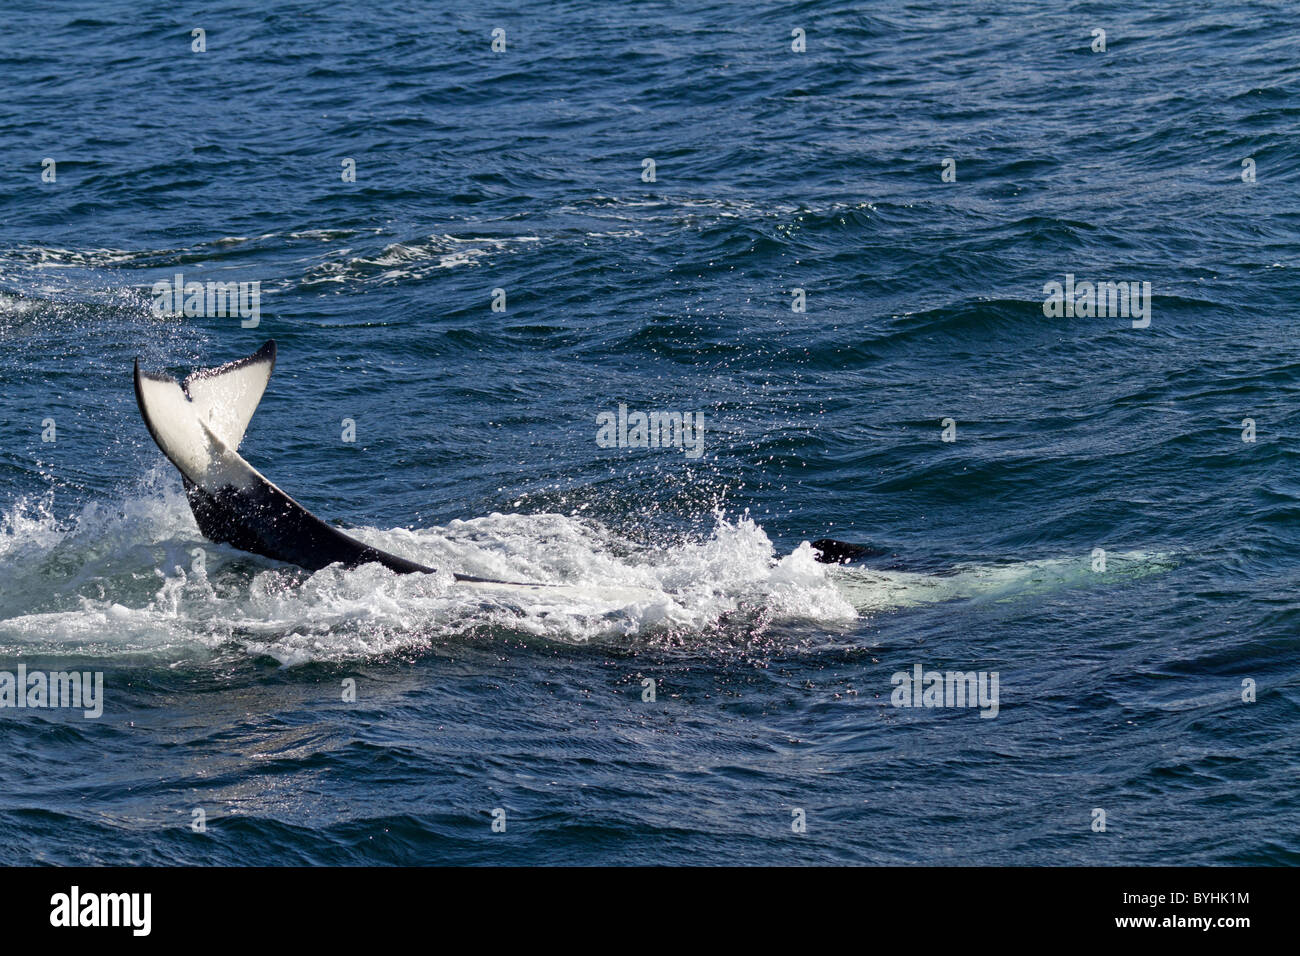 Orca (Orcinus orca) - Stock Image